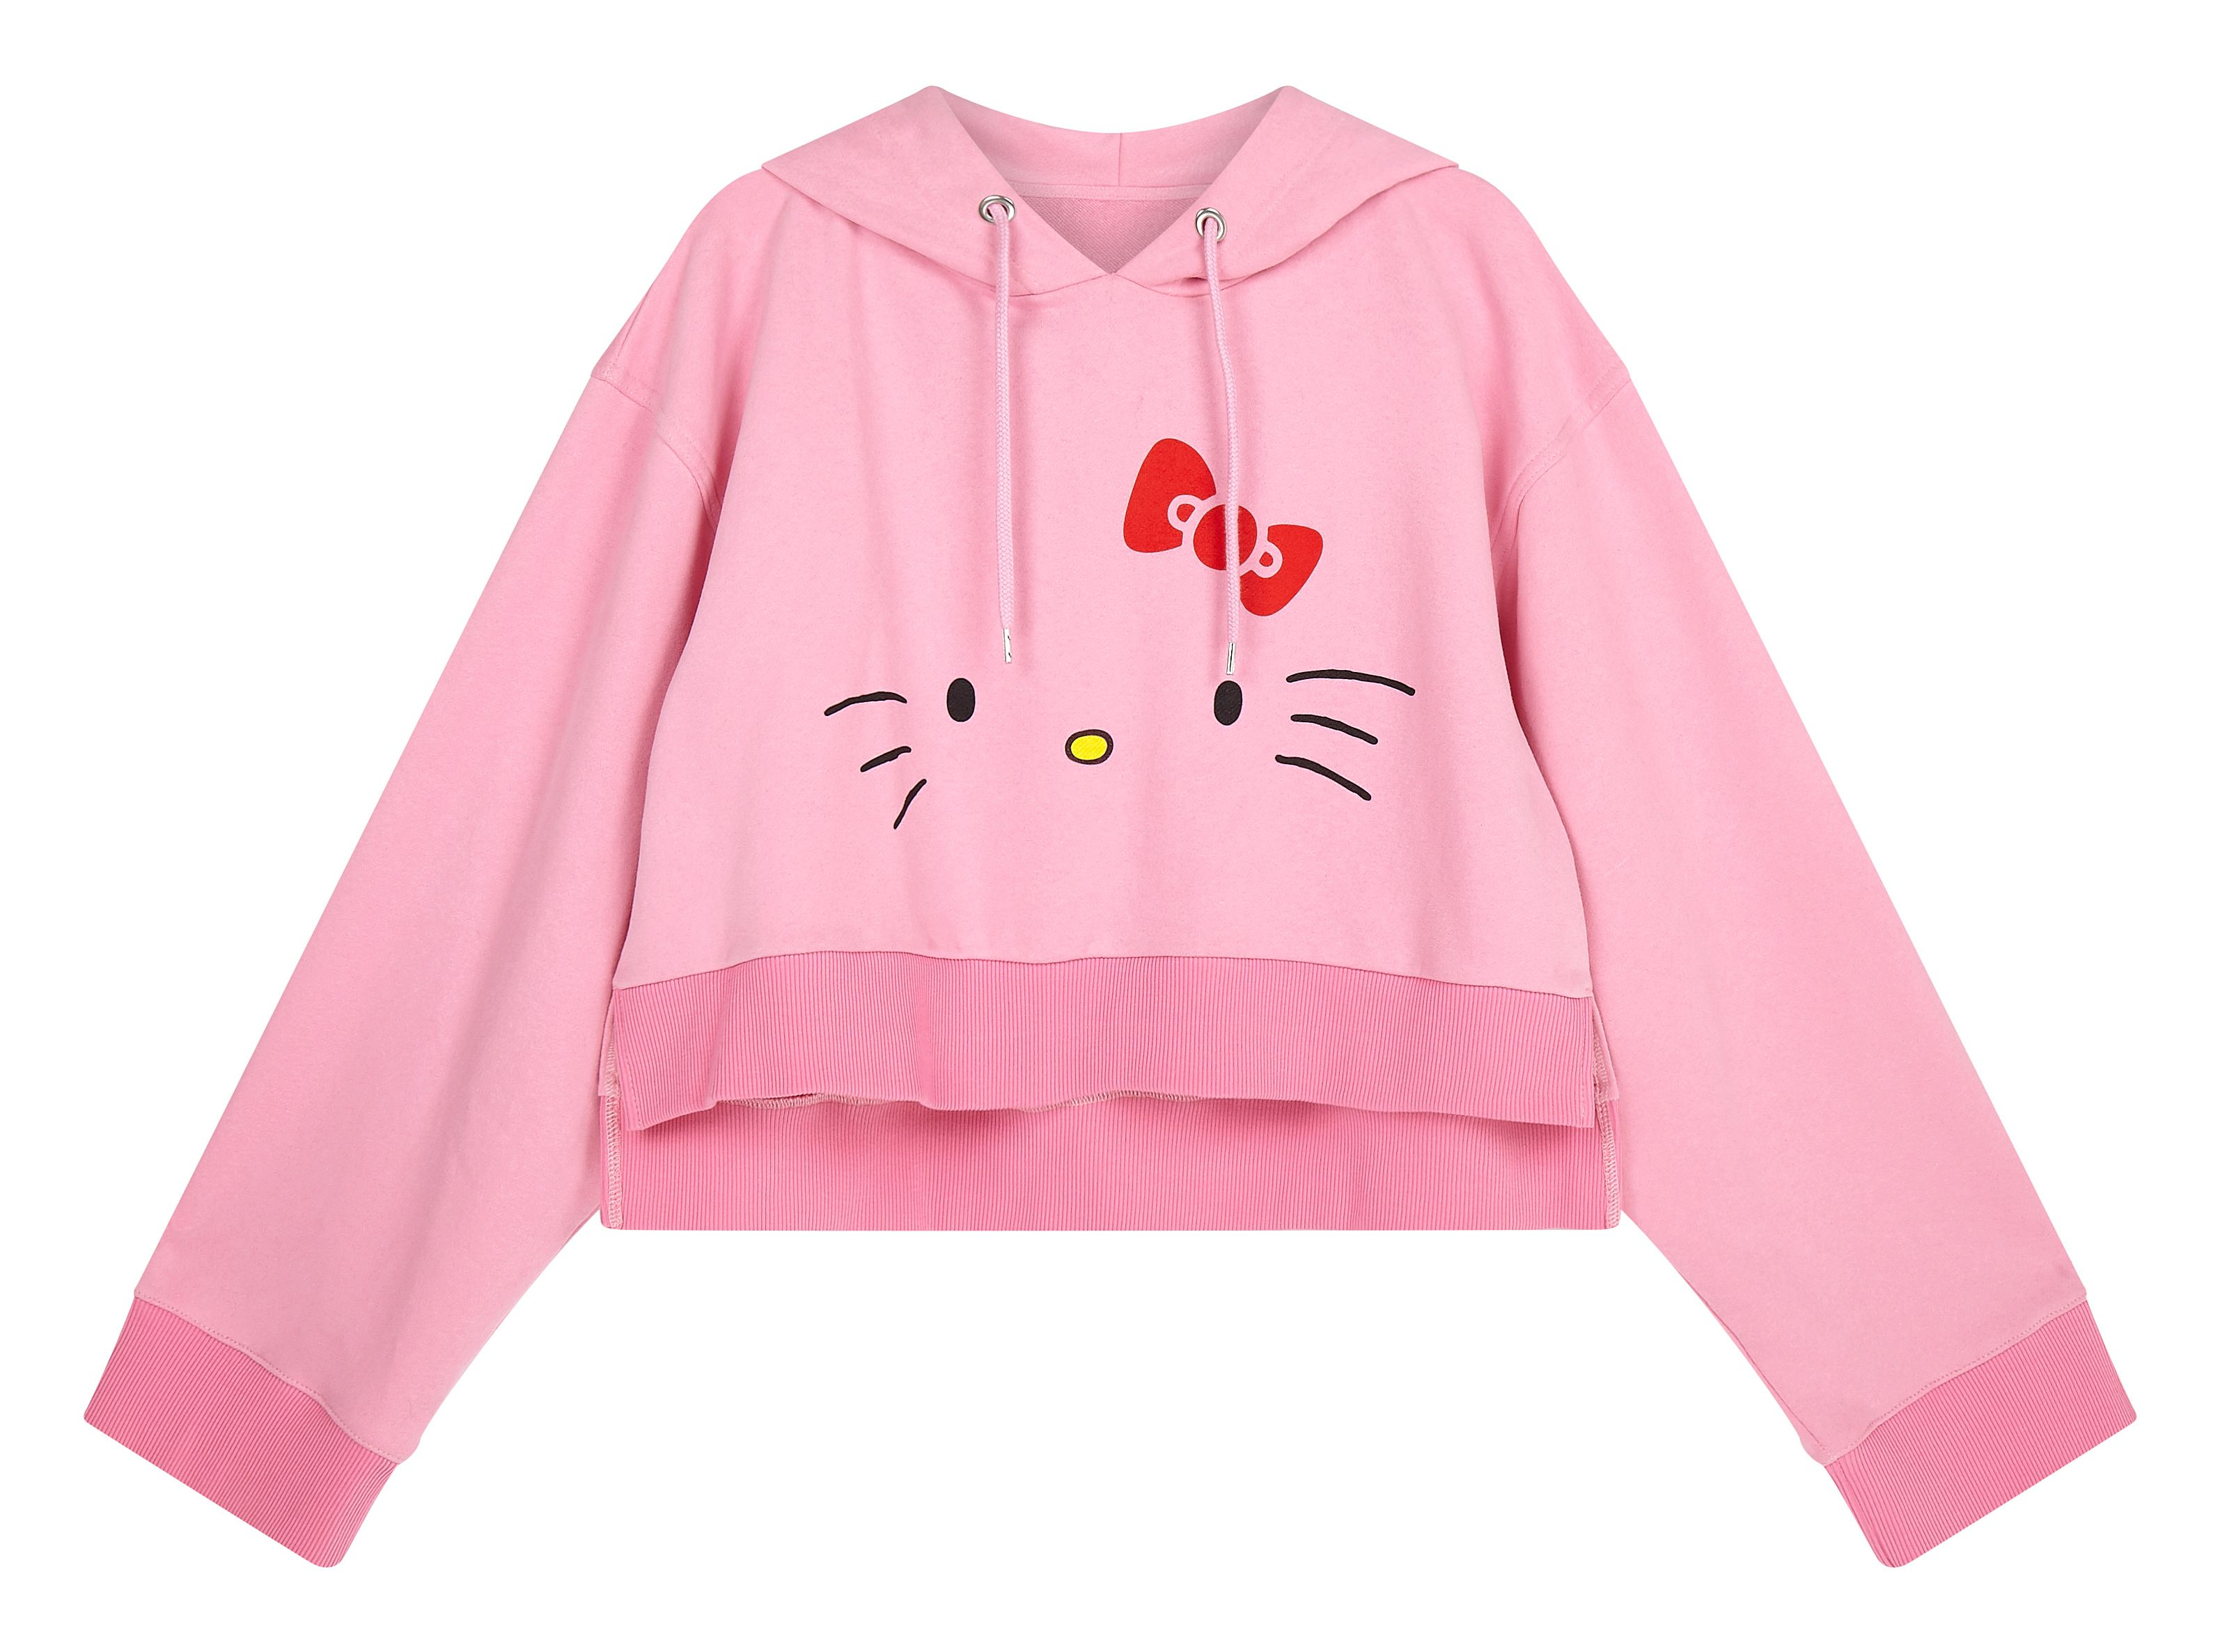 4b7e556b4 ASOS is launching a Hello Kitty collection and it's beyond adorable